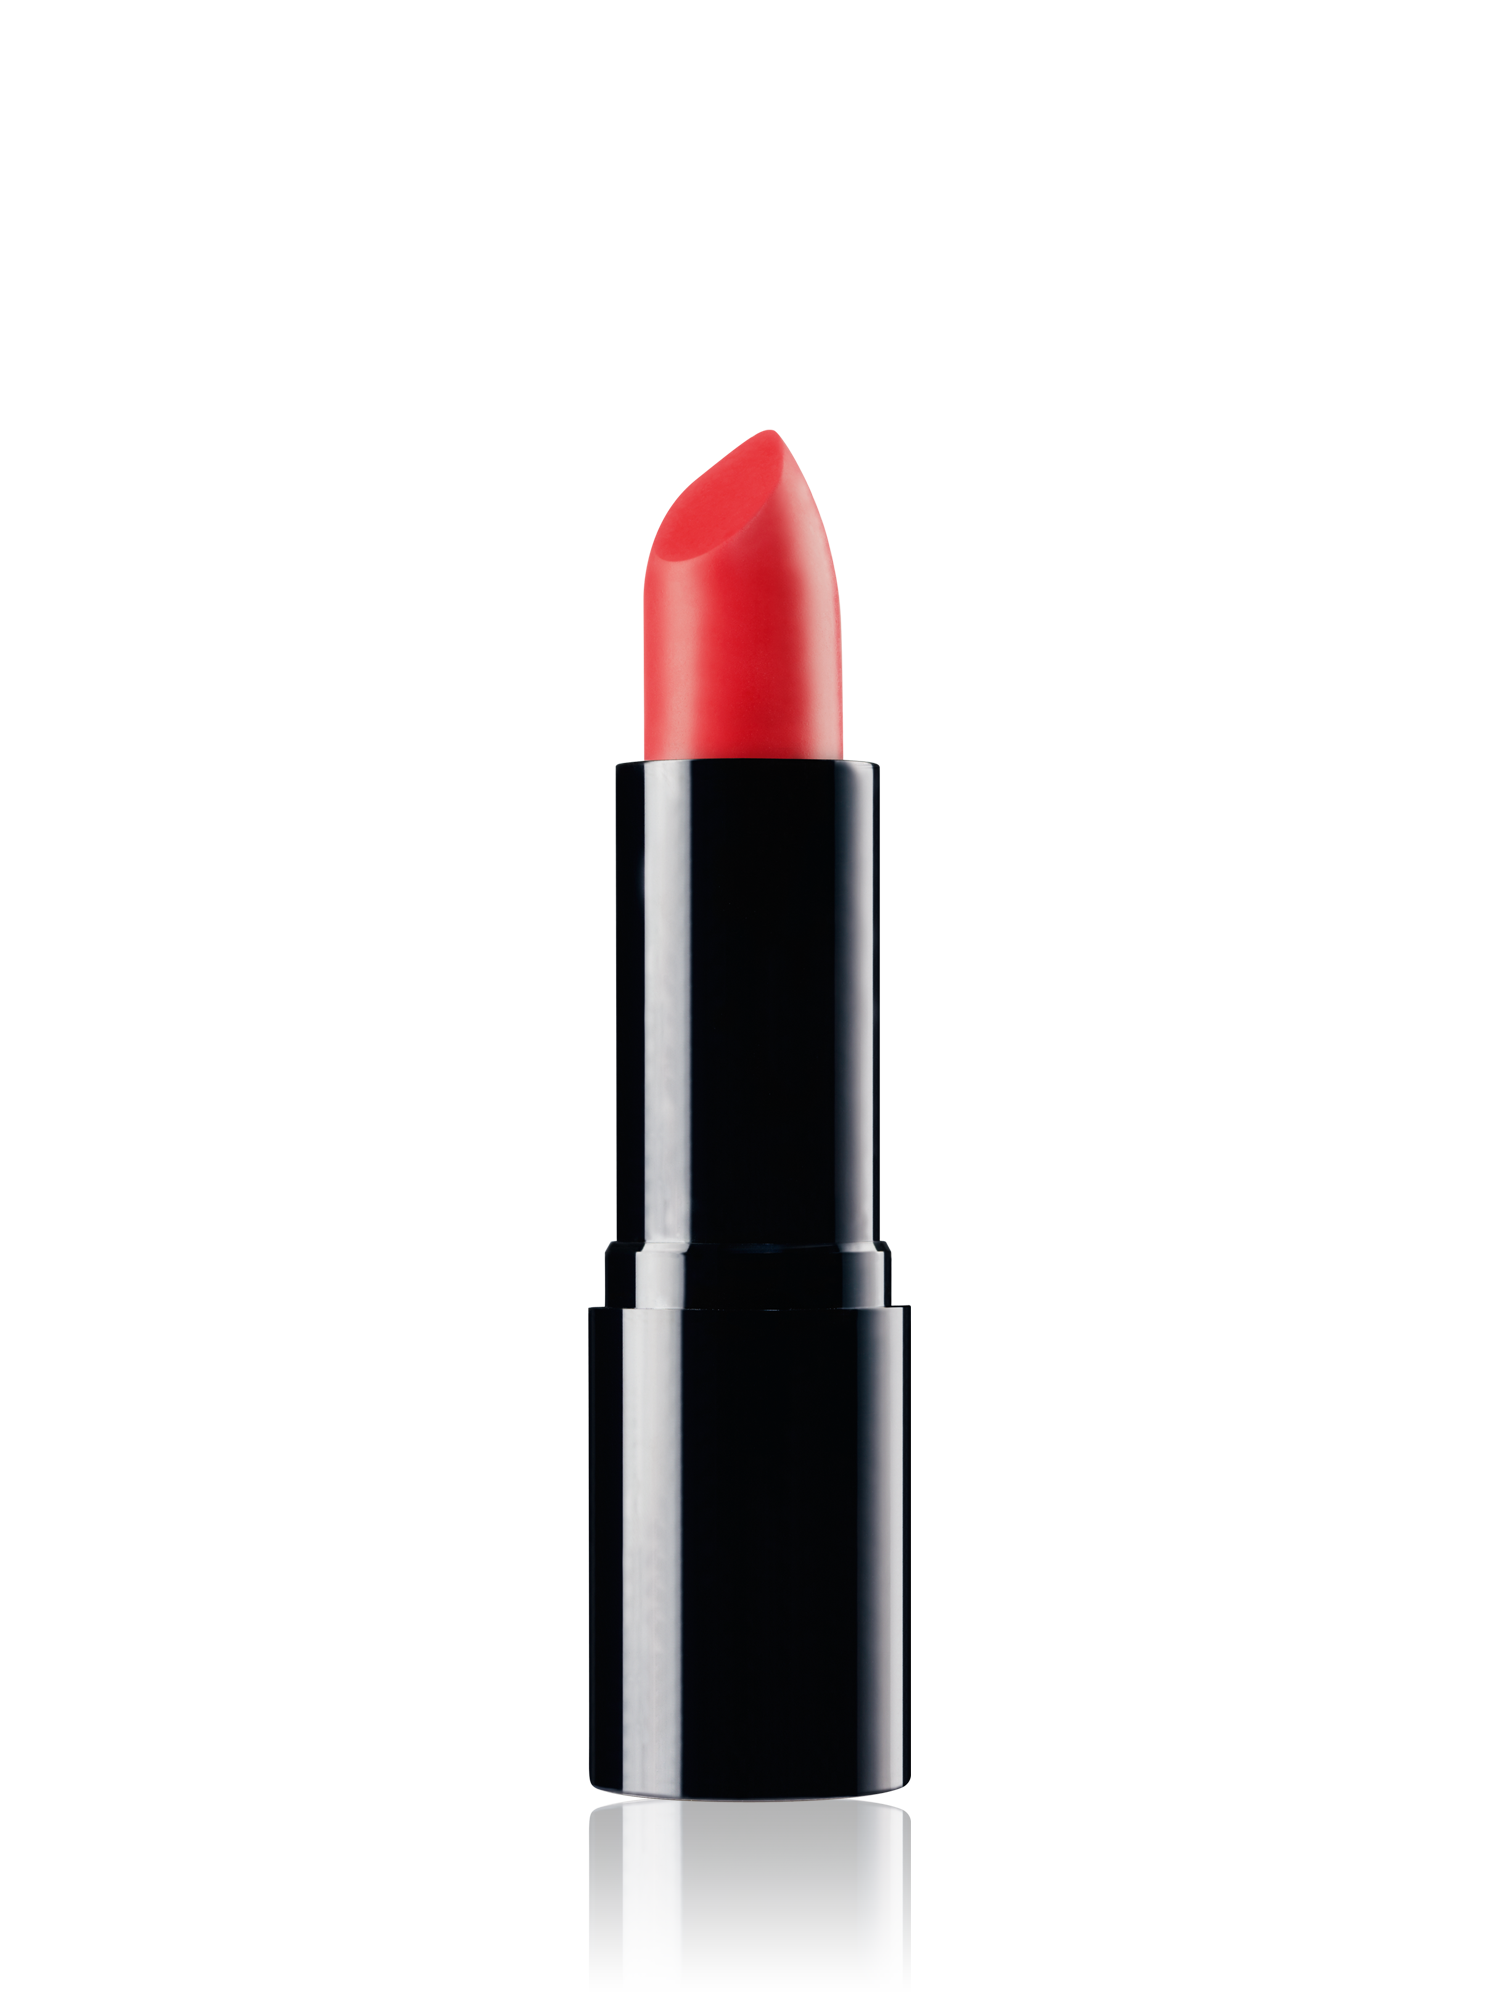 Lipstick Png image #35171